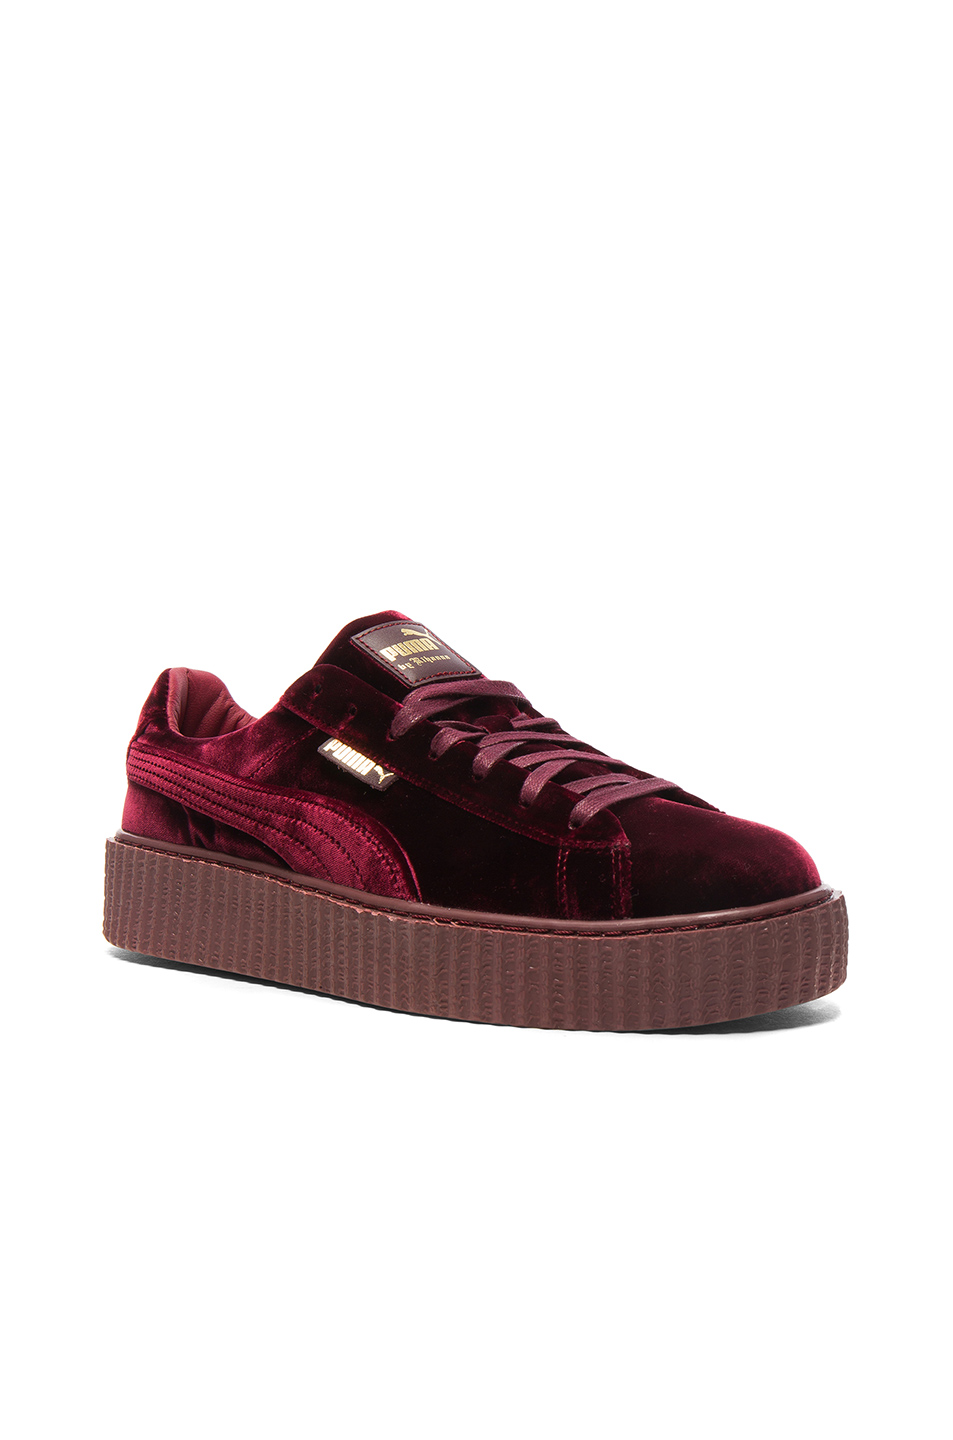 Fenty by Puma Creepers Velvet in Red